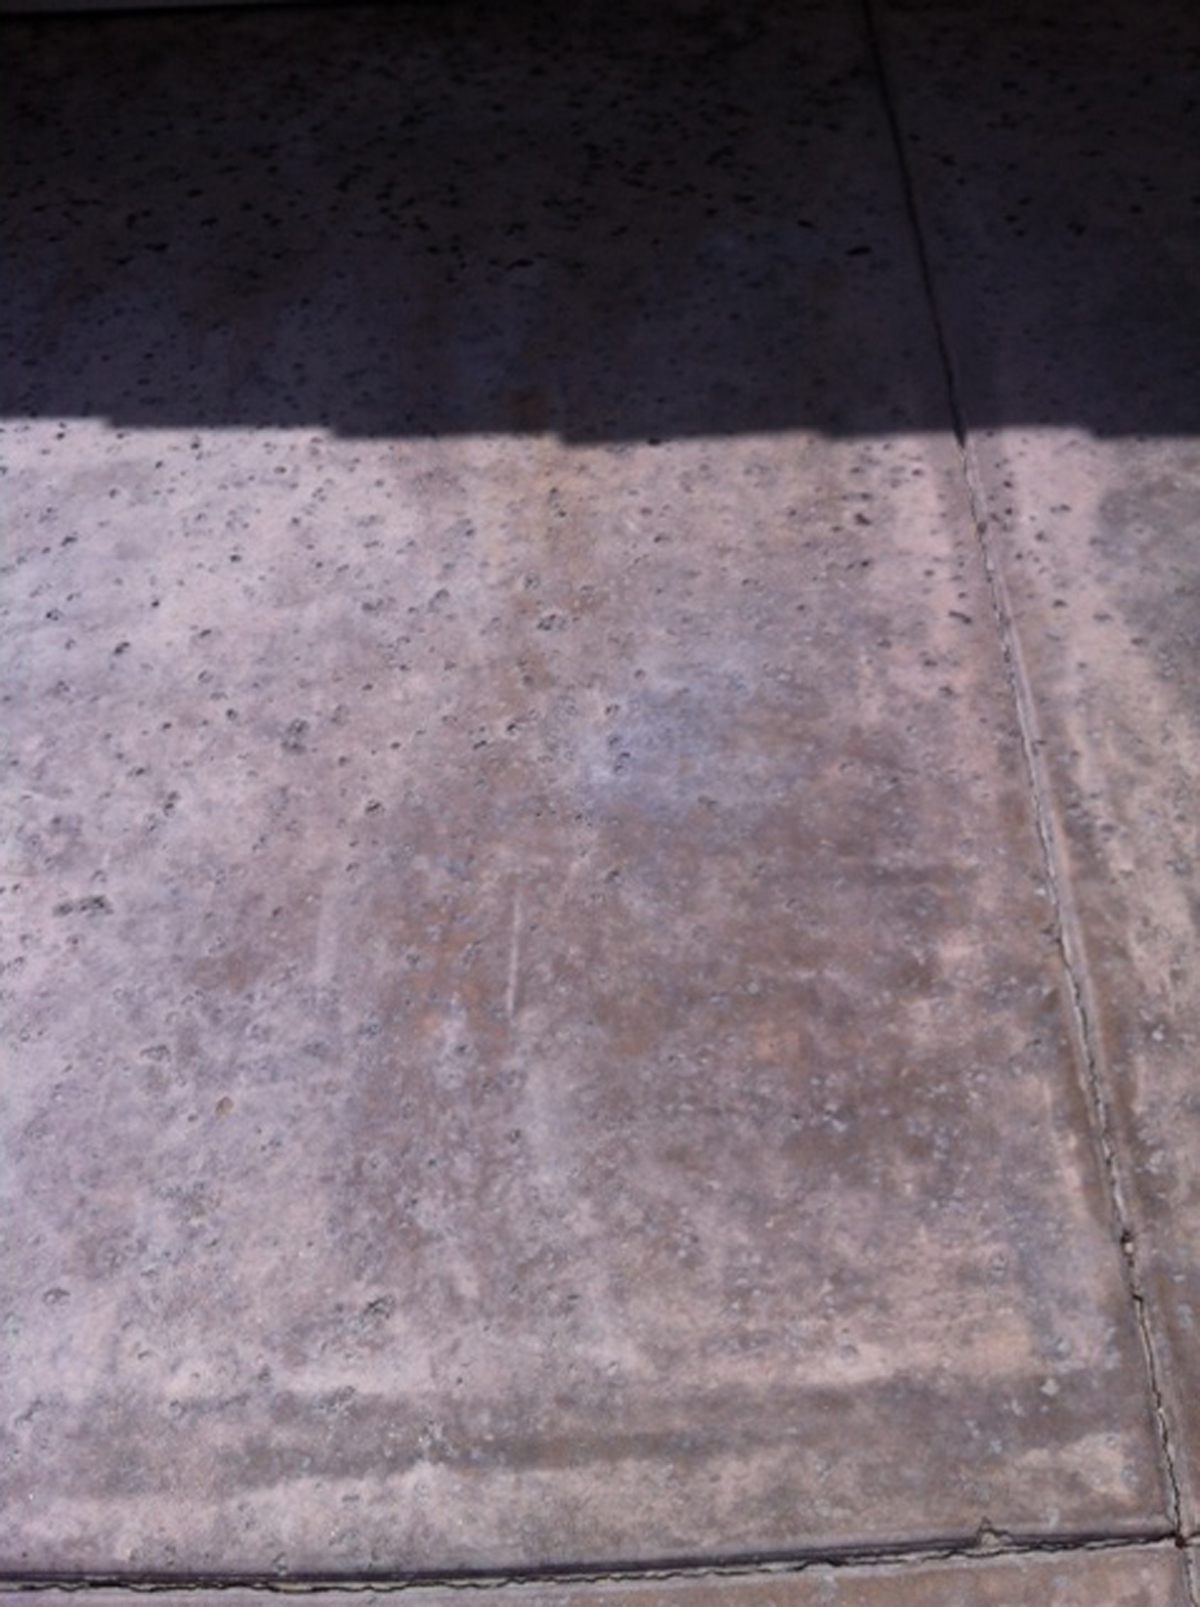 Battery Acid Stains on Colored Concrete